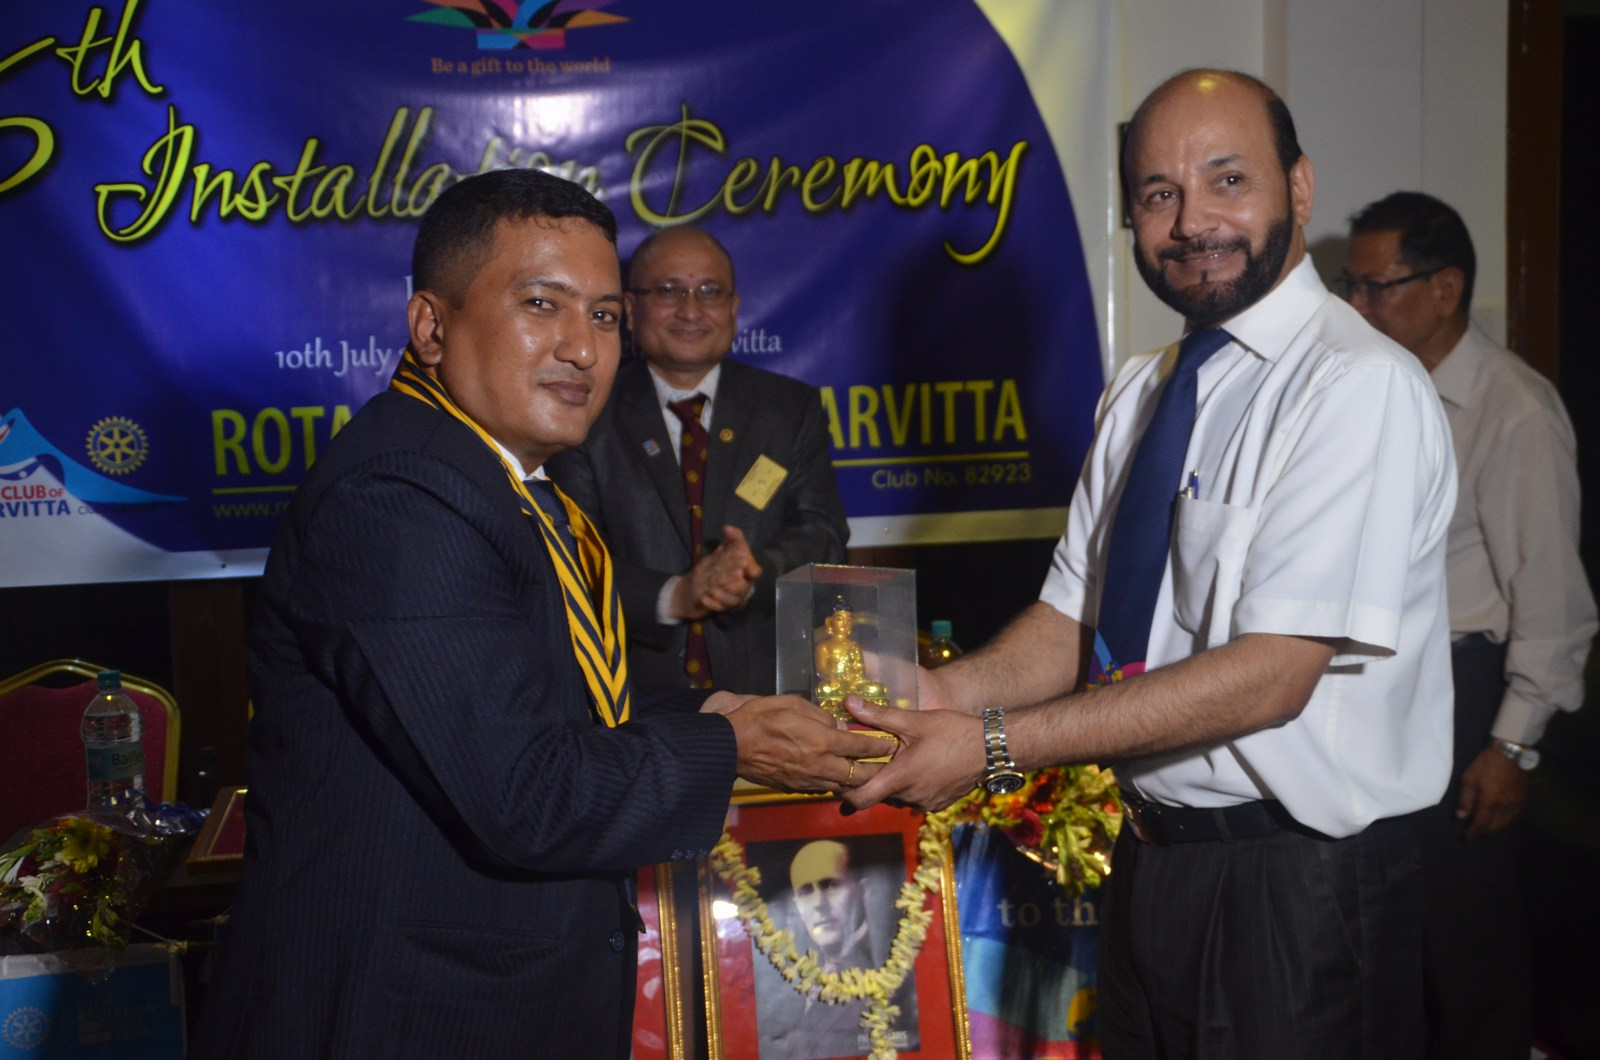 6th Installation Ceremony 2015 16 Rotary Club Of Kakarvitta 56